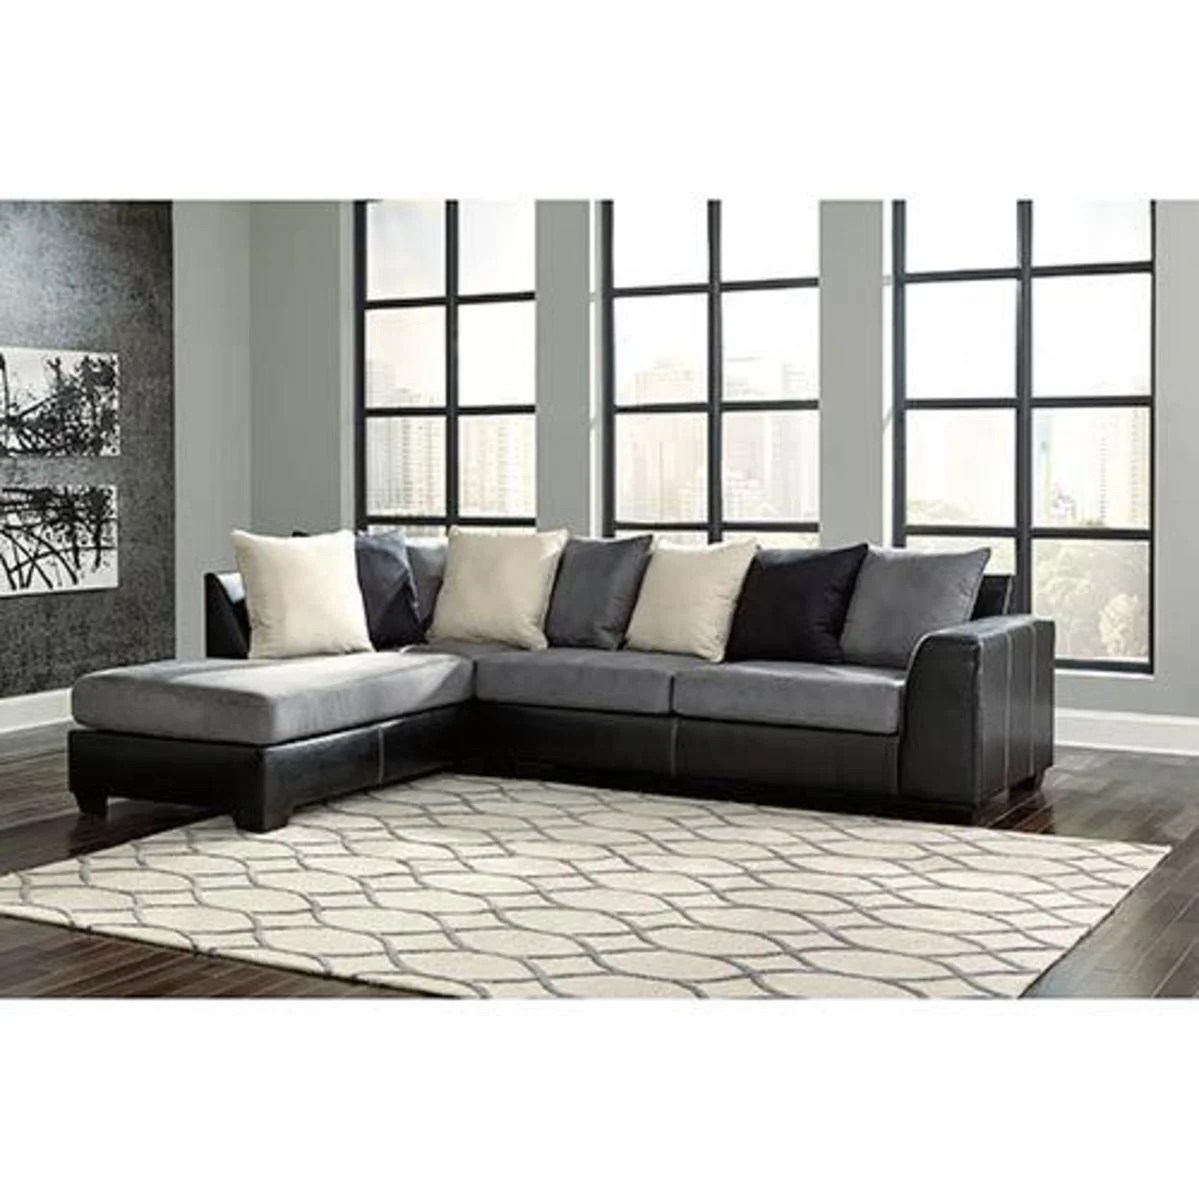 Signature Design By Ashley Jacurso Charcoal Corner Chaise Sofa Sectional